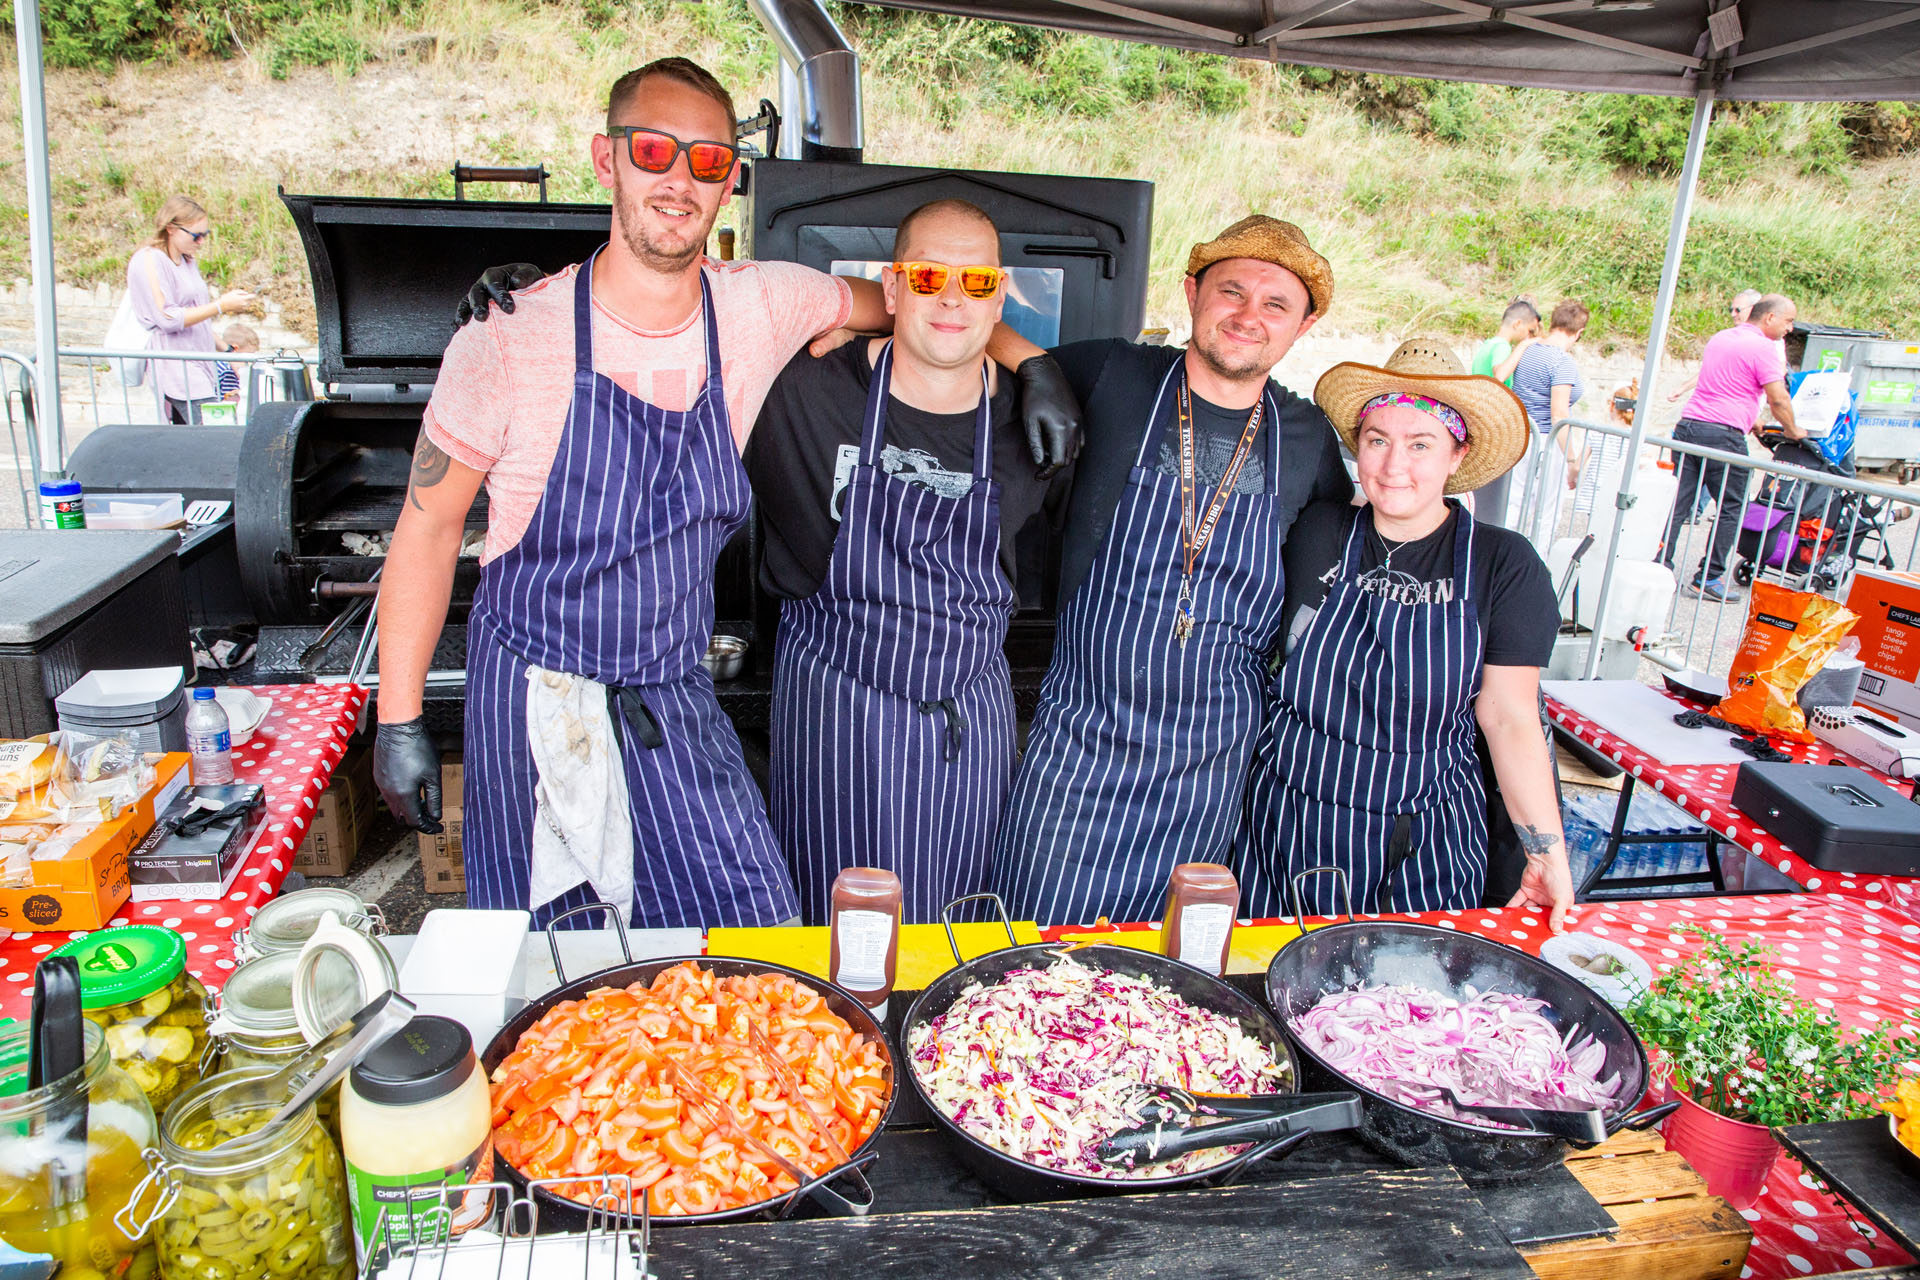 4 chefs posing for a photo in the food stall at the air show